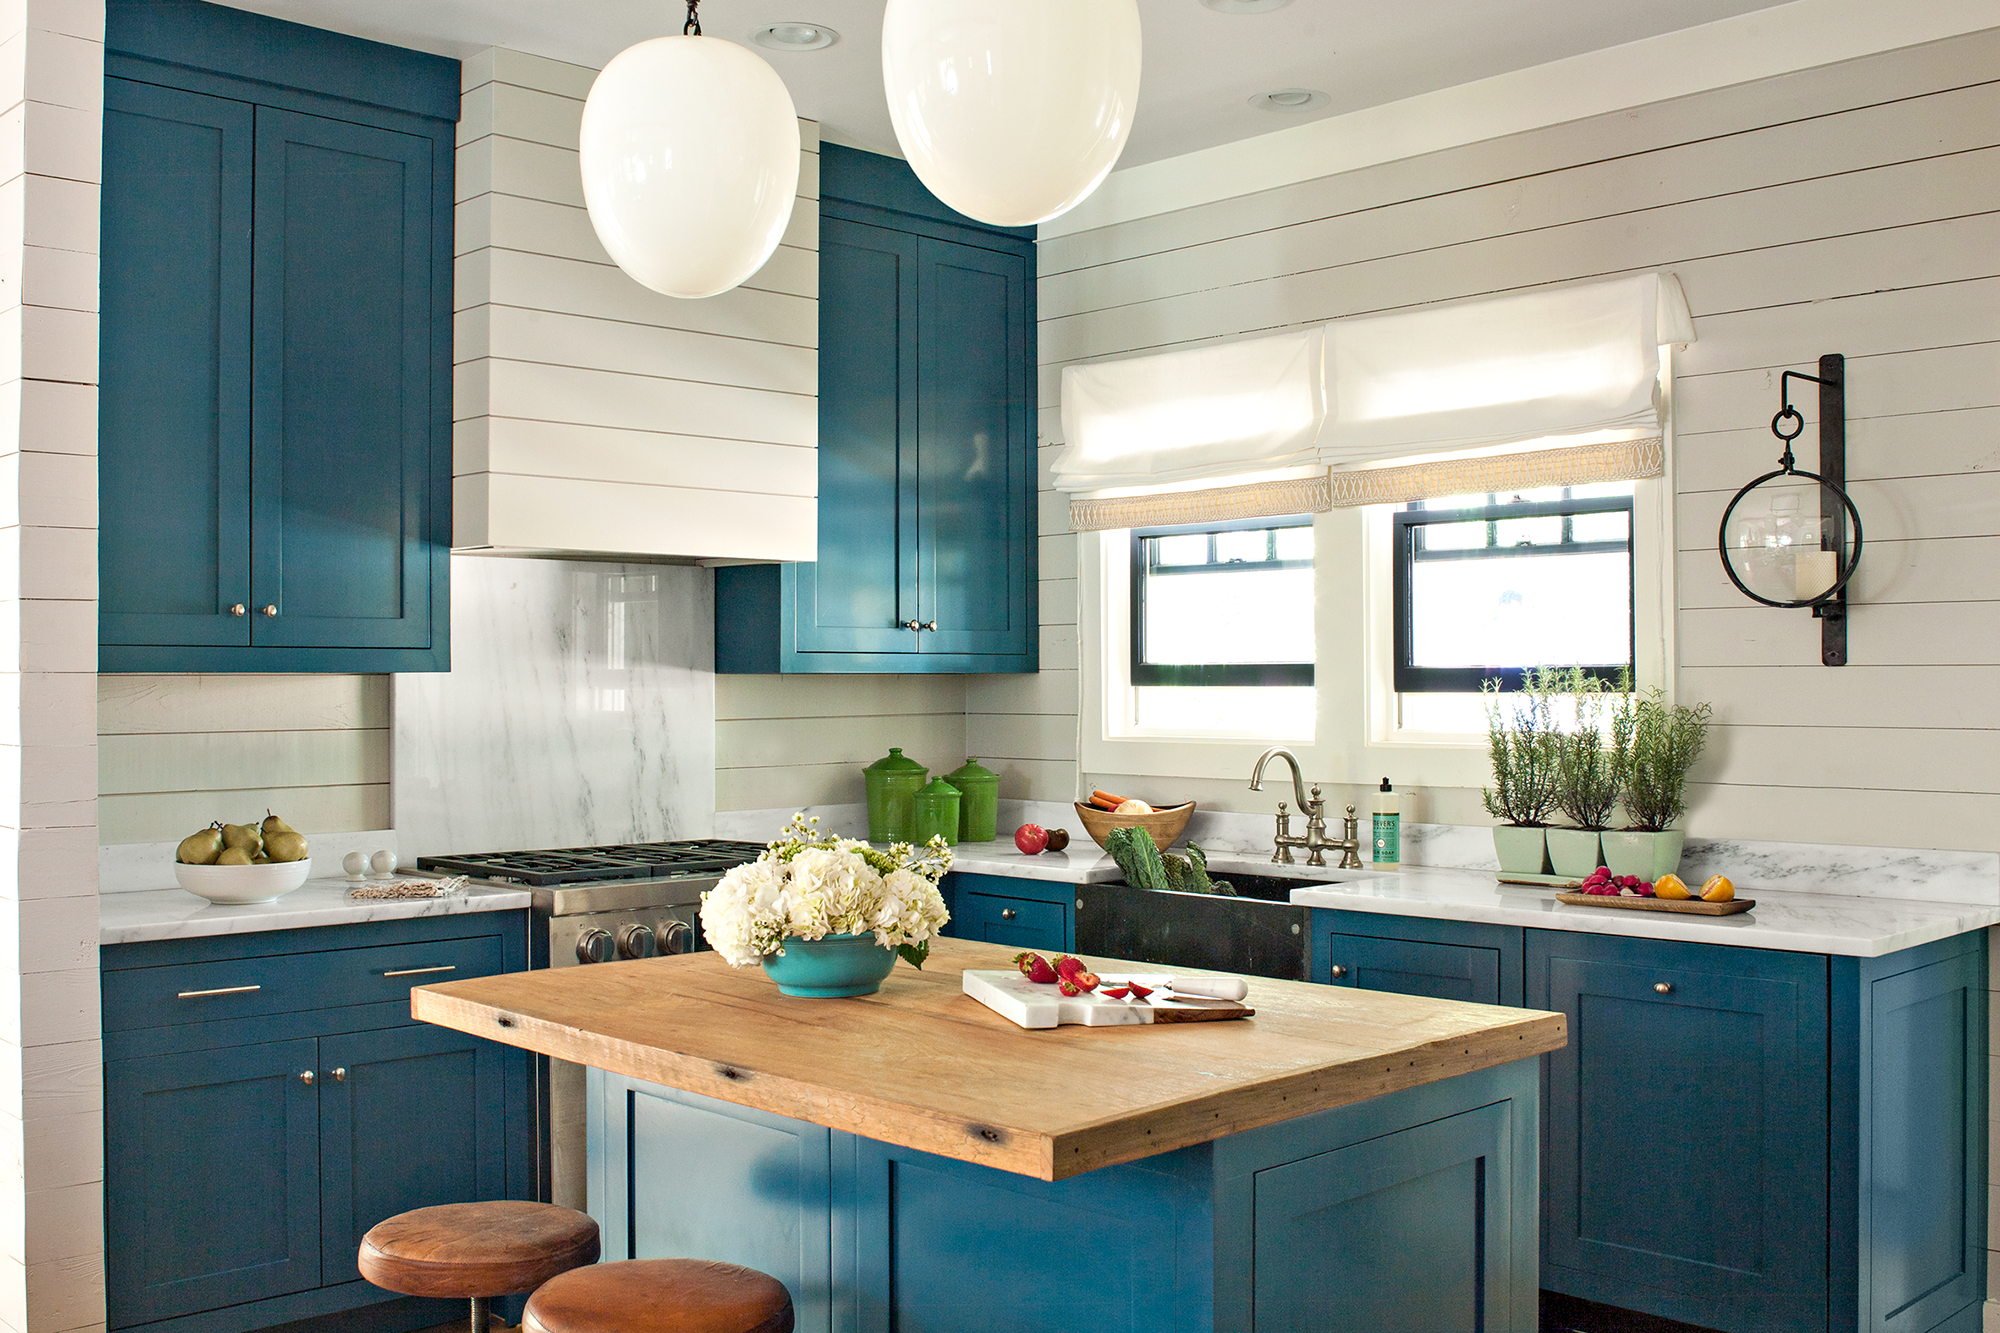 Refreshing kitchen with blue replacement kitchen cabinet doors.